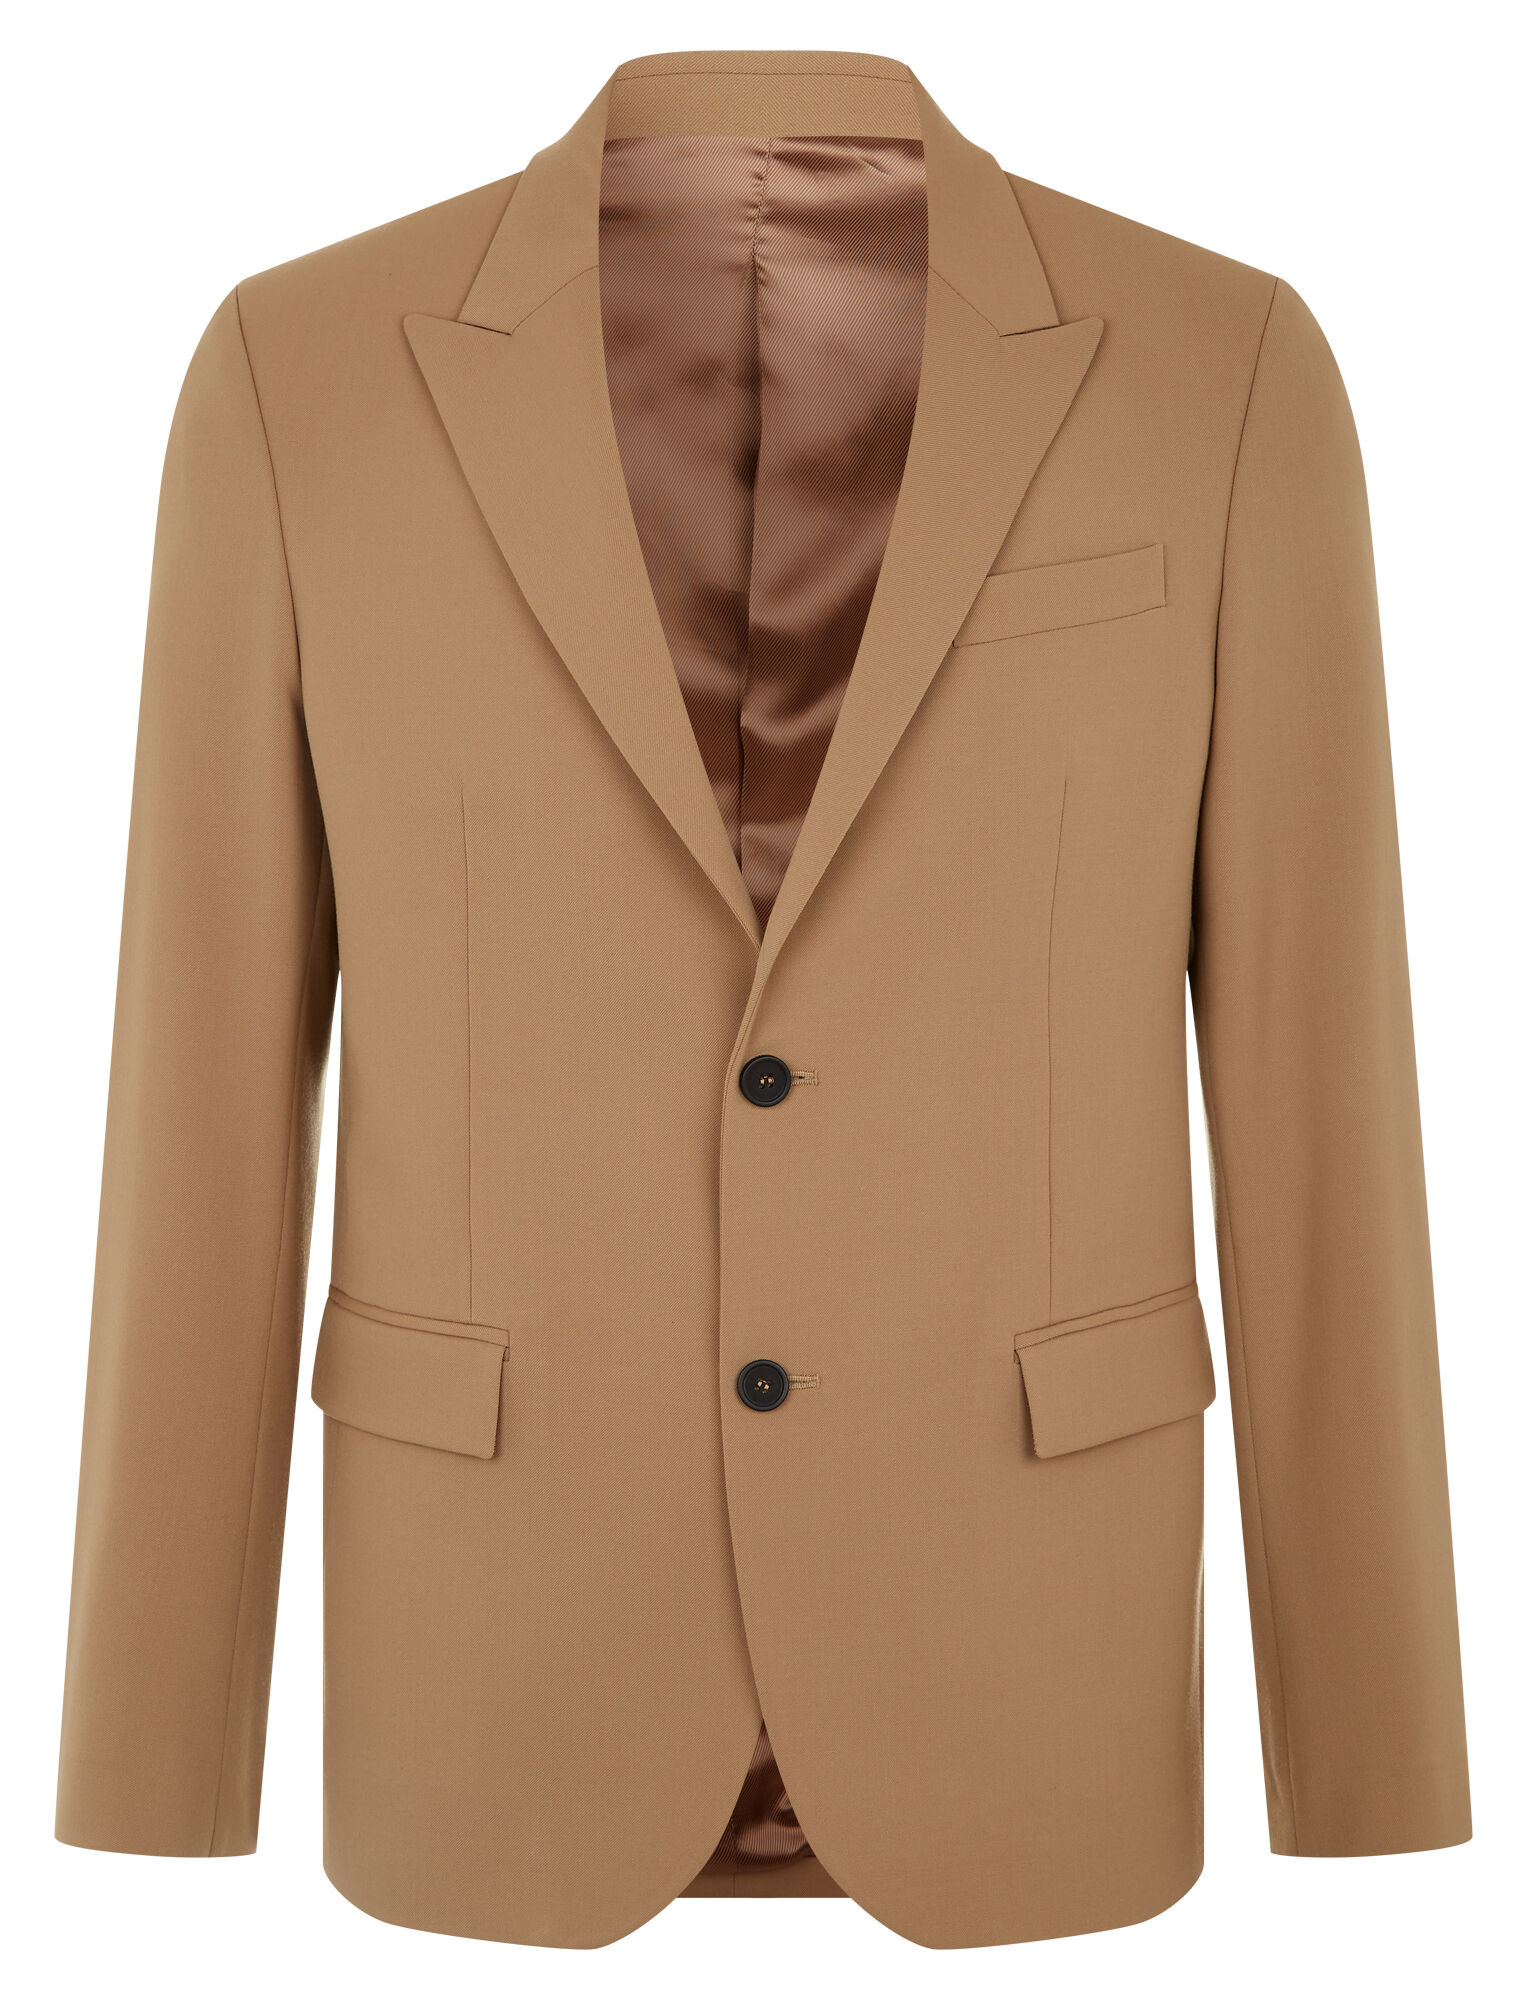 Joseph, Cannes Techno Wool Stretch Blazer, in CAMEL